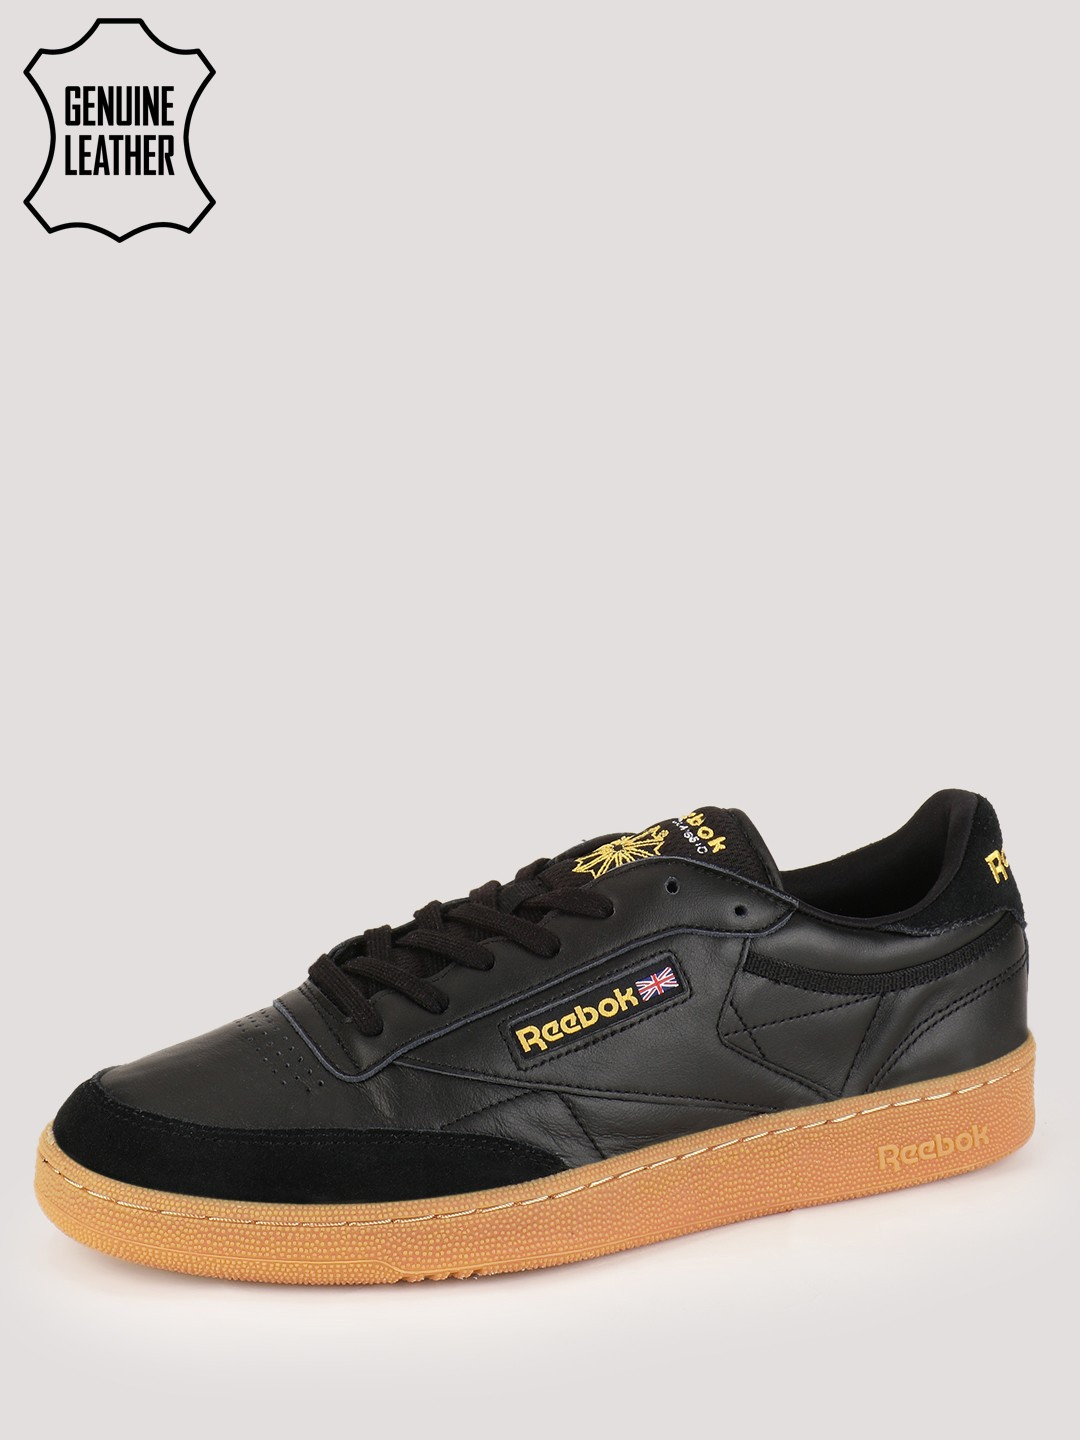 59a31292ad096 Buy all black reebok shoes   OFF79% Discounted